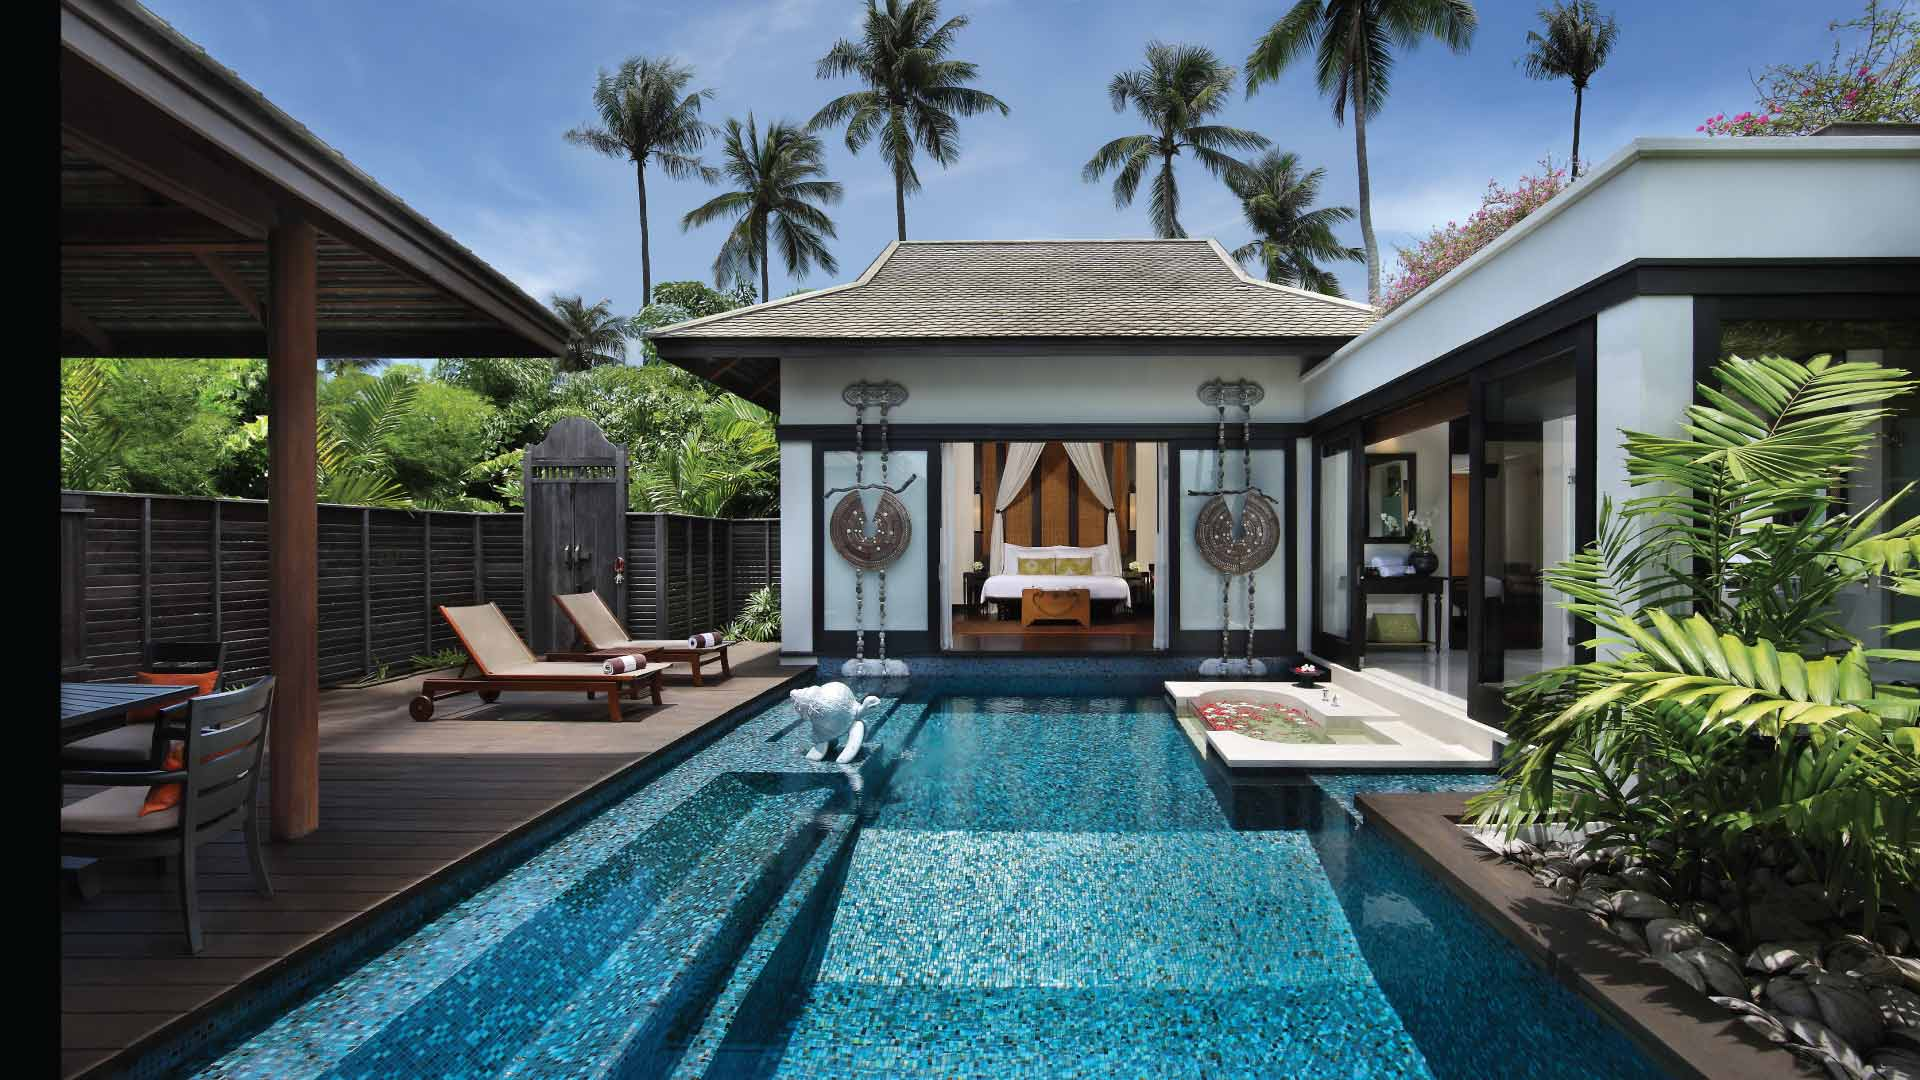 https://assets.anantara.com/image/upload/q_auto,f_auto/media/minor/anantara/images/anantara-mai-khao-phuket-villas/the-resort/desktop-banner/anantara_maikhao_phuket_poolvilla_header_1920x1080.jpg